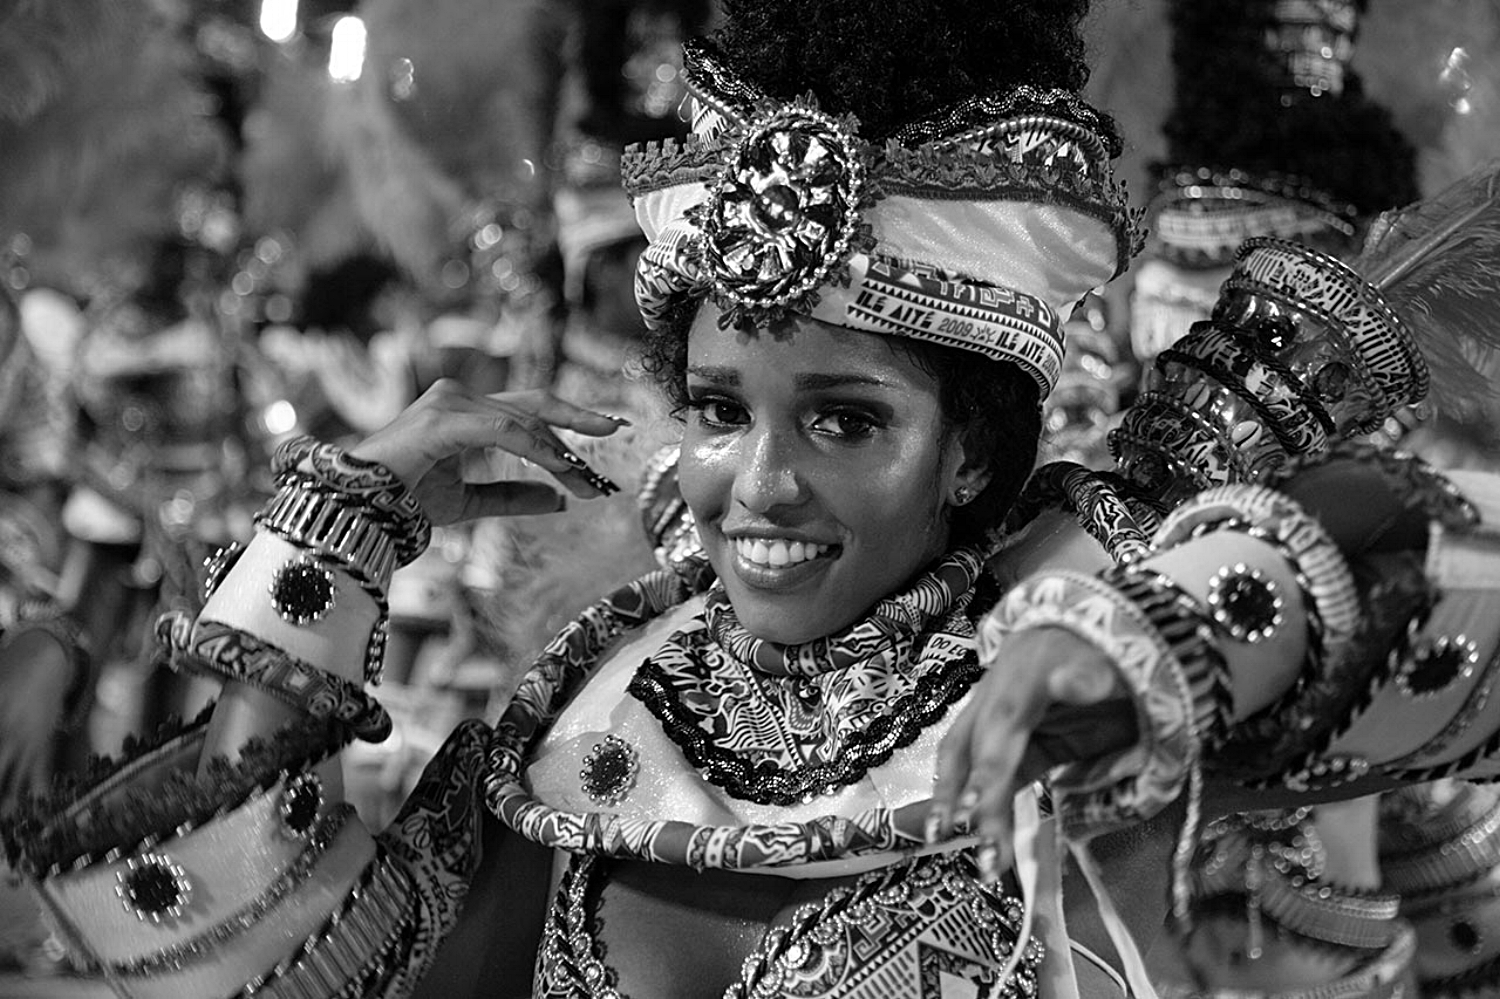 Brasilian woman during the celebration of Carnival.